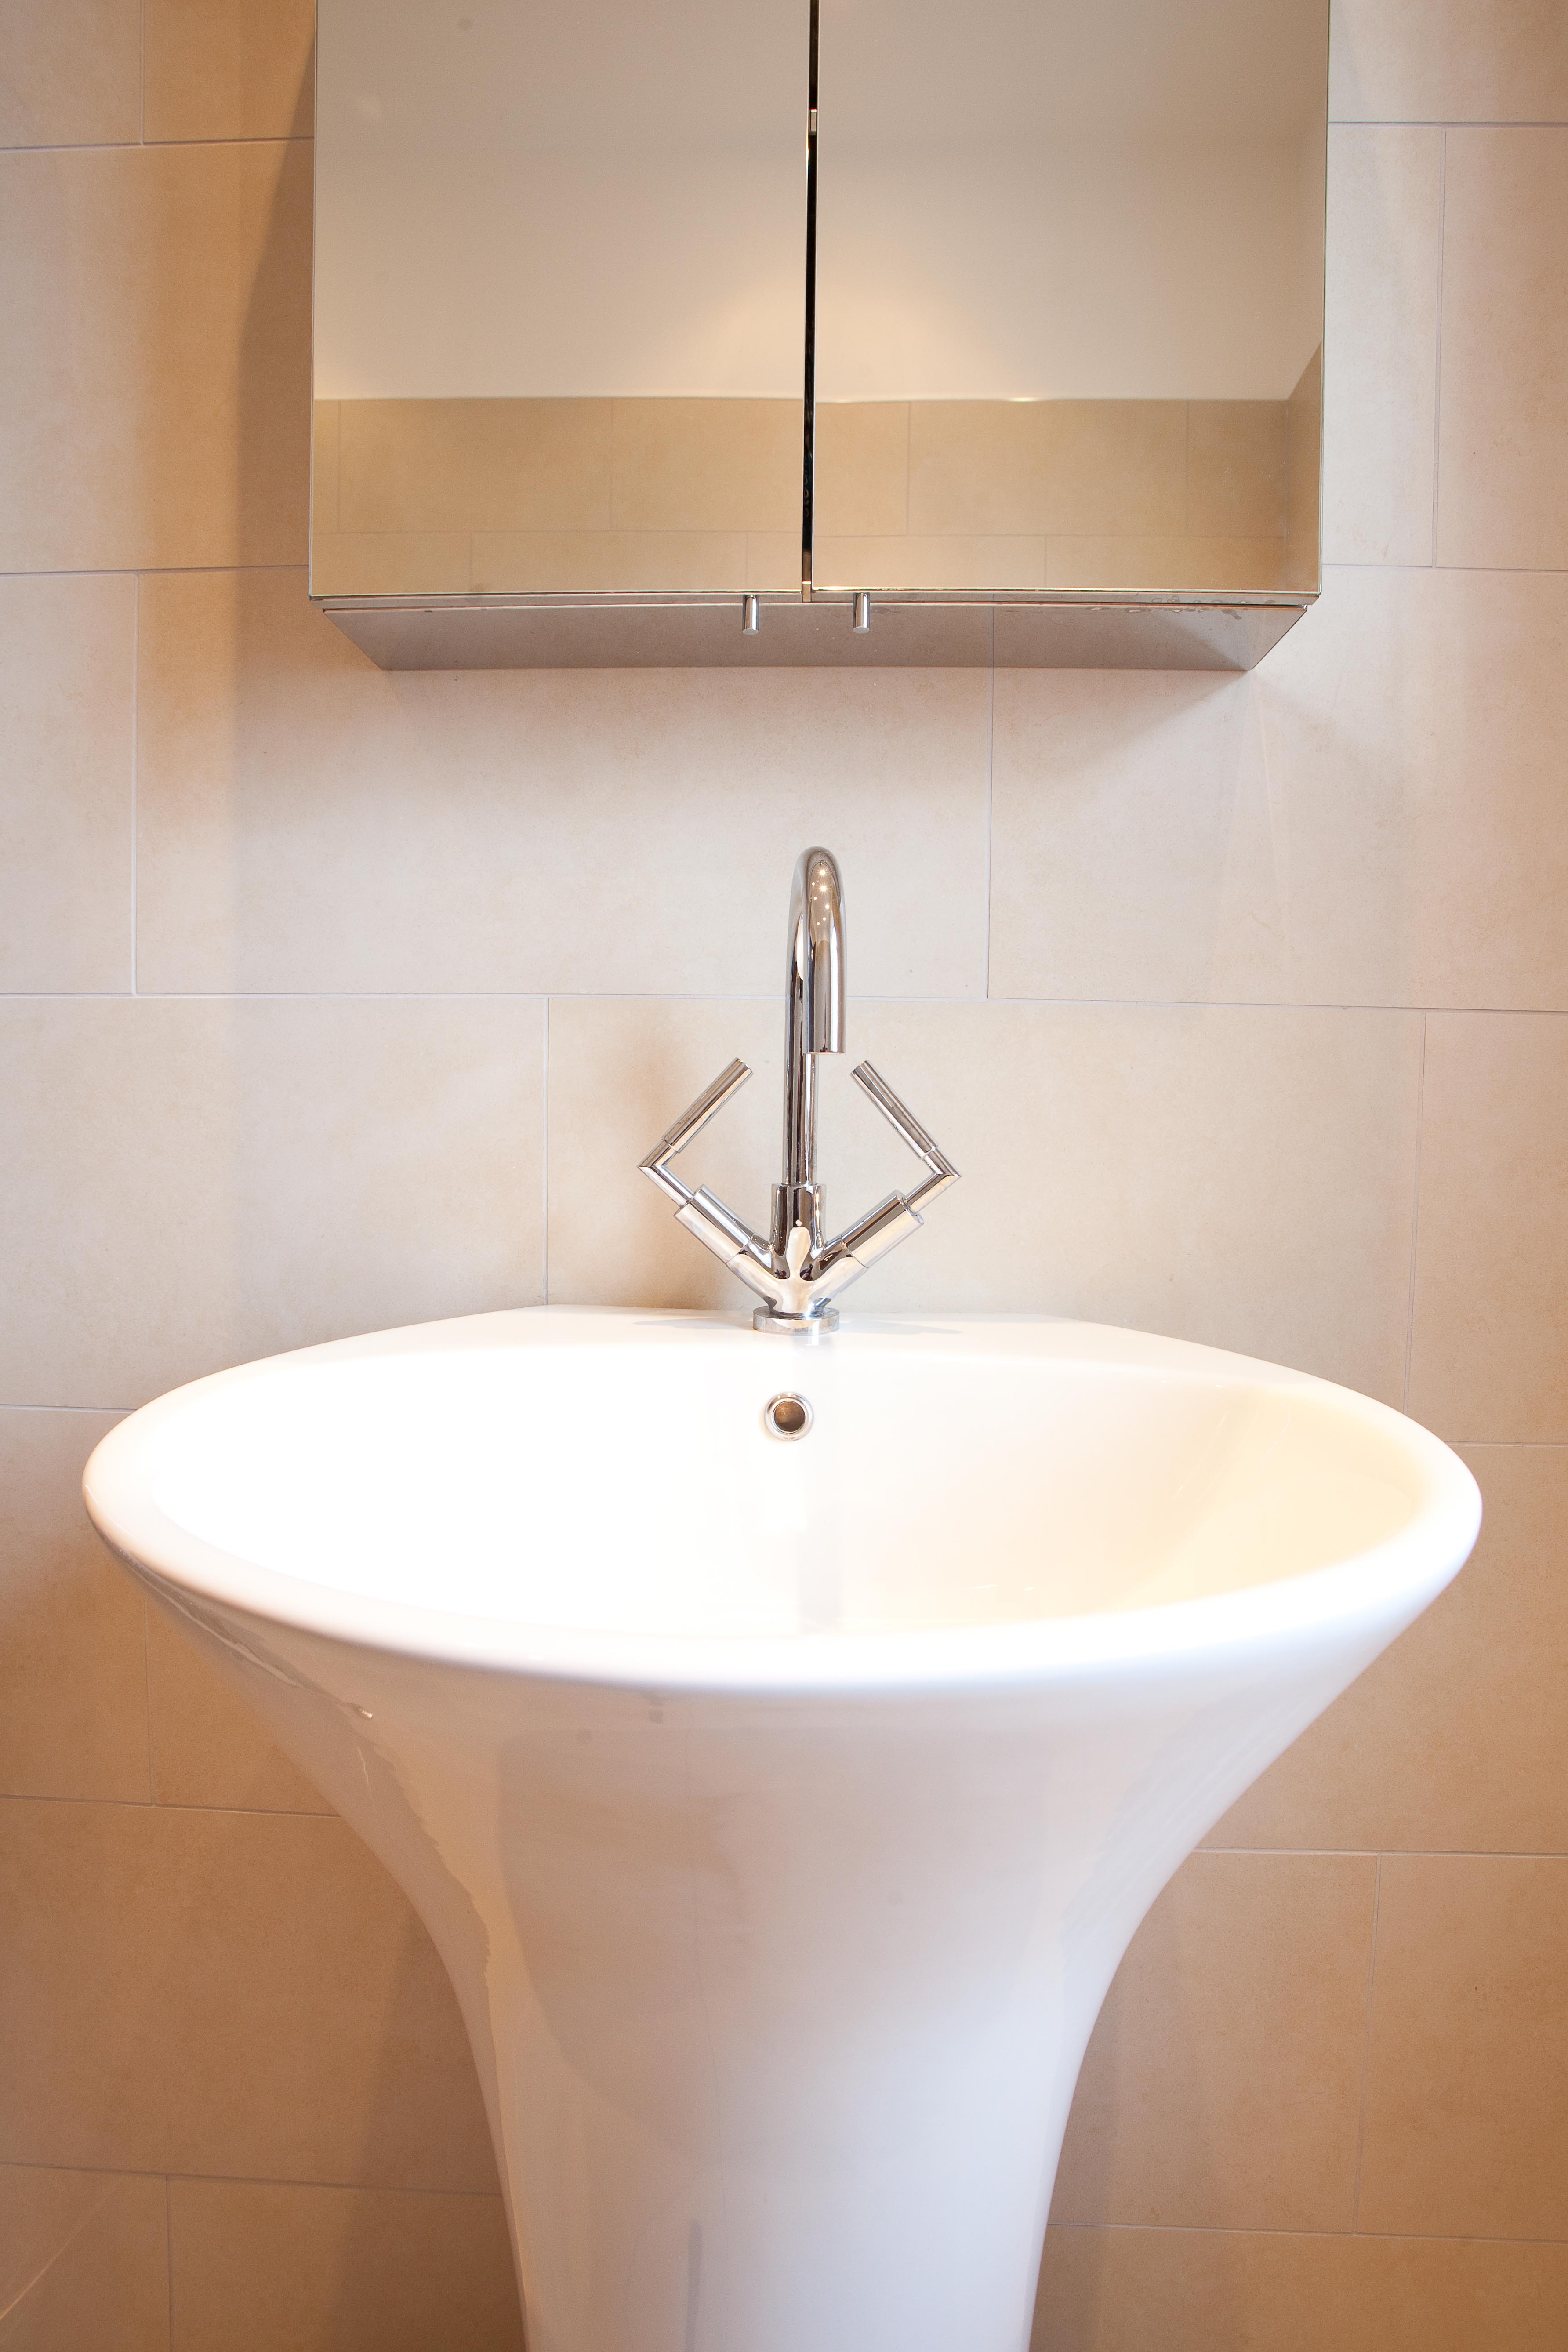 Pedestal bathroom basin with mixer tap and mirror.